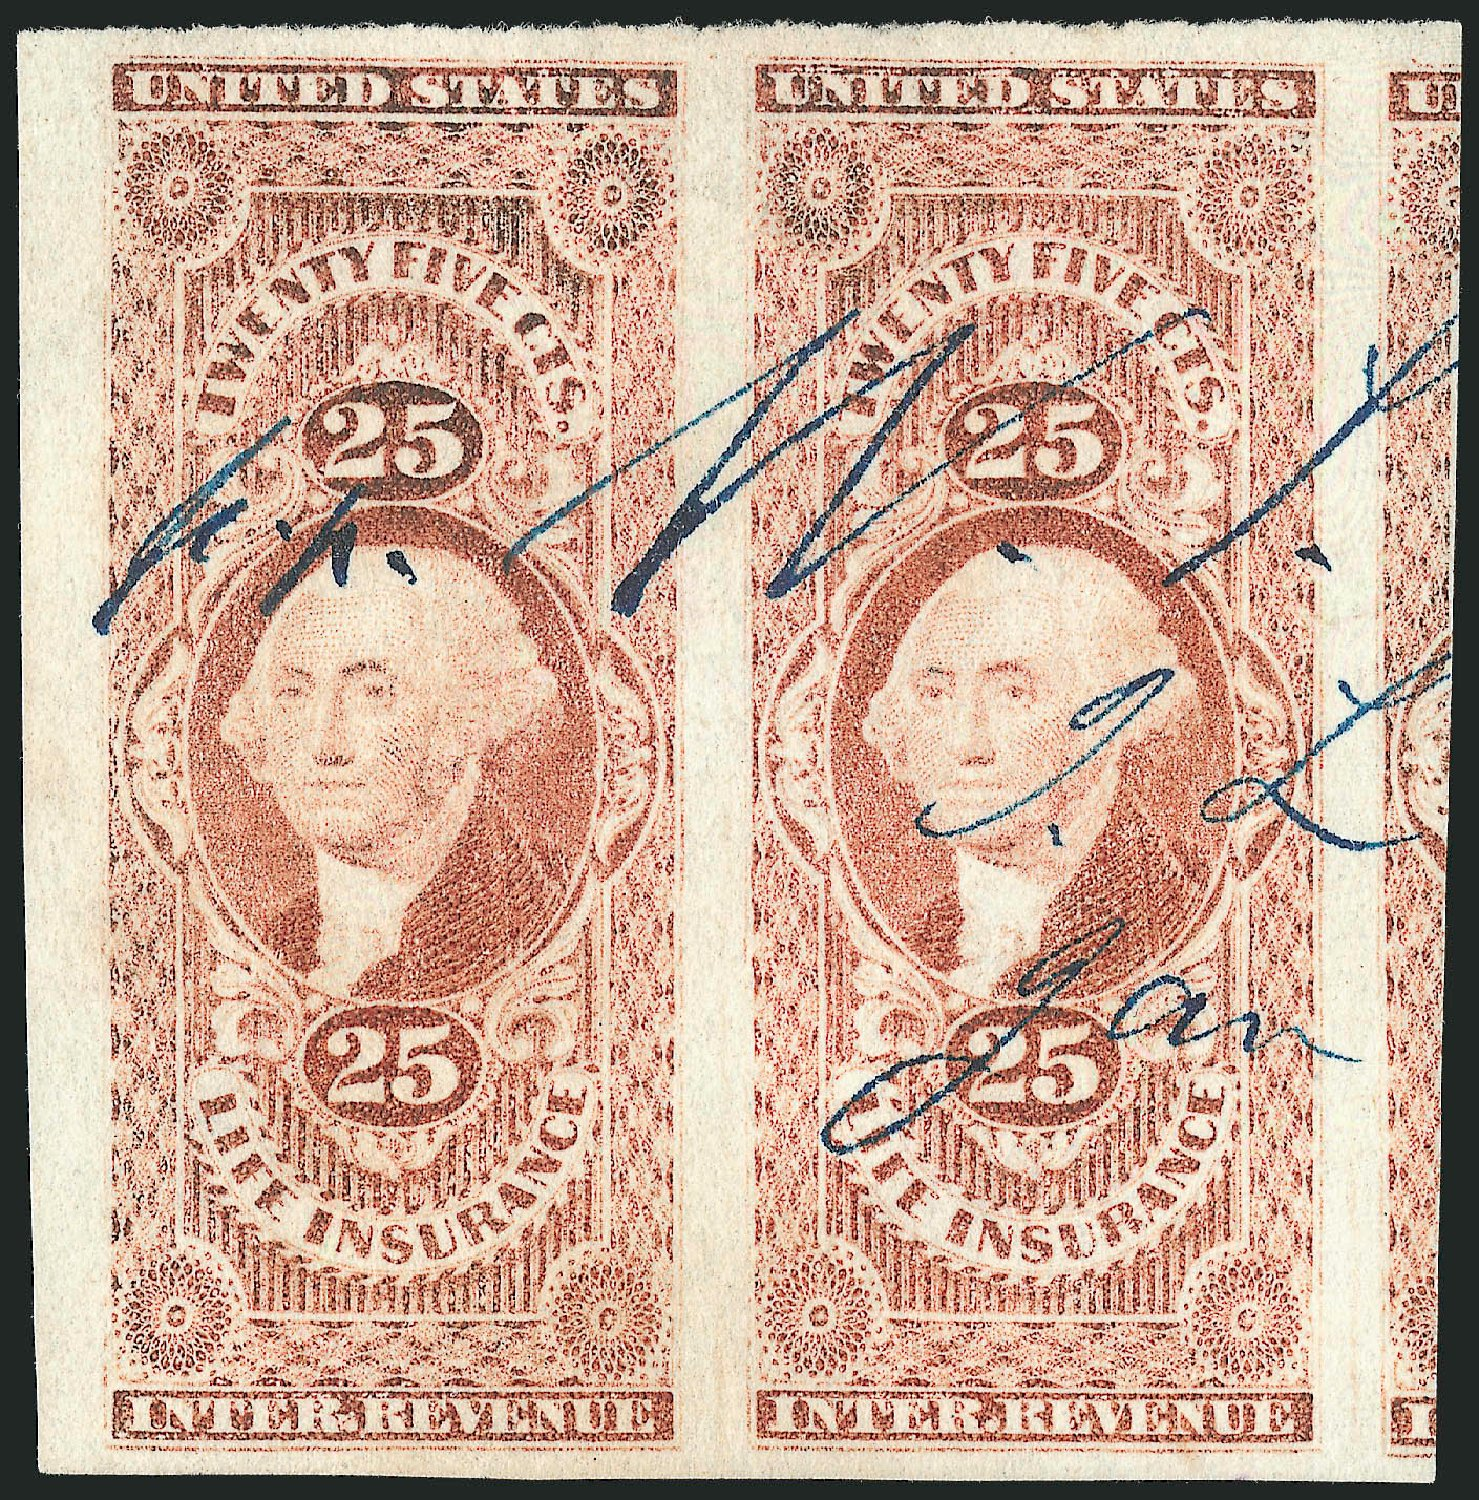 US Stamp Price Scott Catalog # R47 - 1862 25c Revenue Life Insurance. Robert Siegel Auction Galleries, Dec 2014, Sale 1089, Lot 227